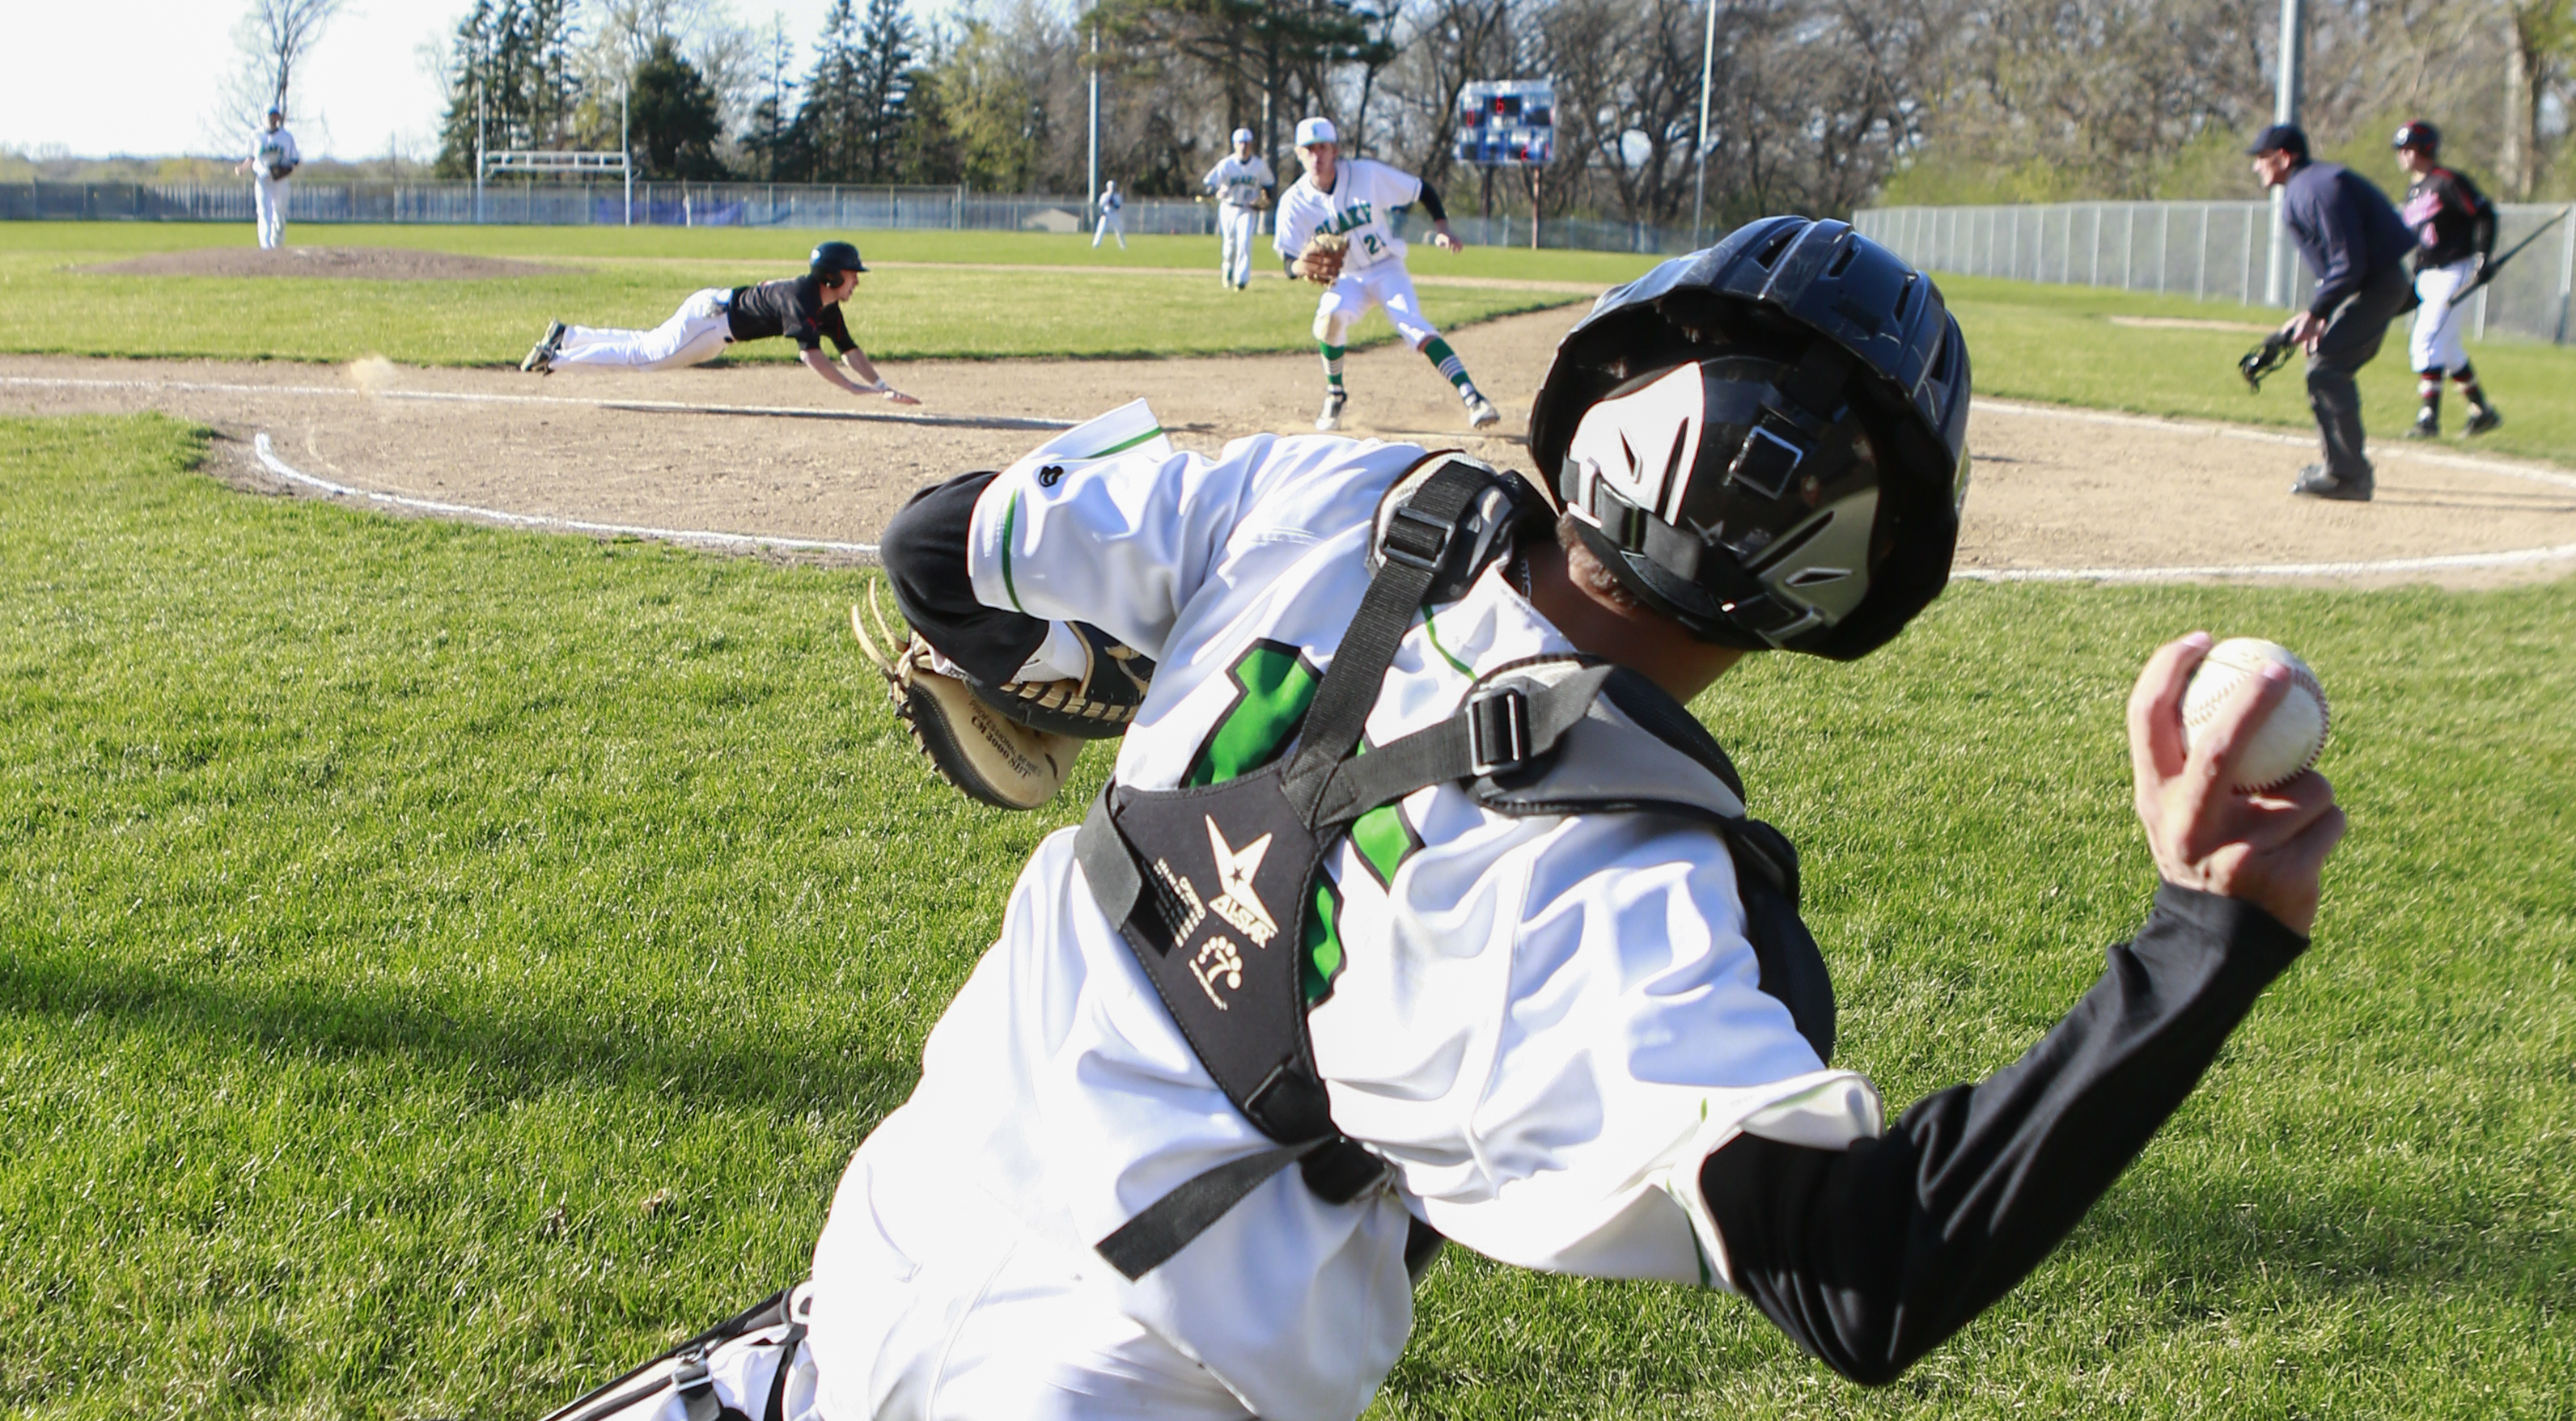 Ford Schroeder (3) of Minnehaha Academy slides in for a run in the 6th inning. Minnehaha Academy defeated Blake 5 to 1. Photo by Chris Juhn